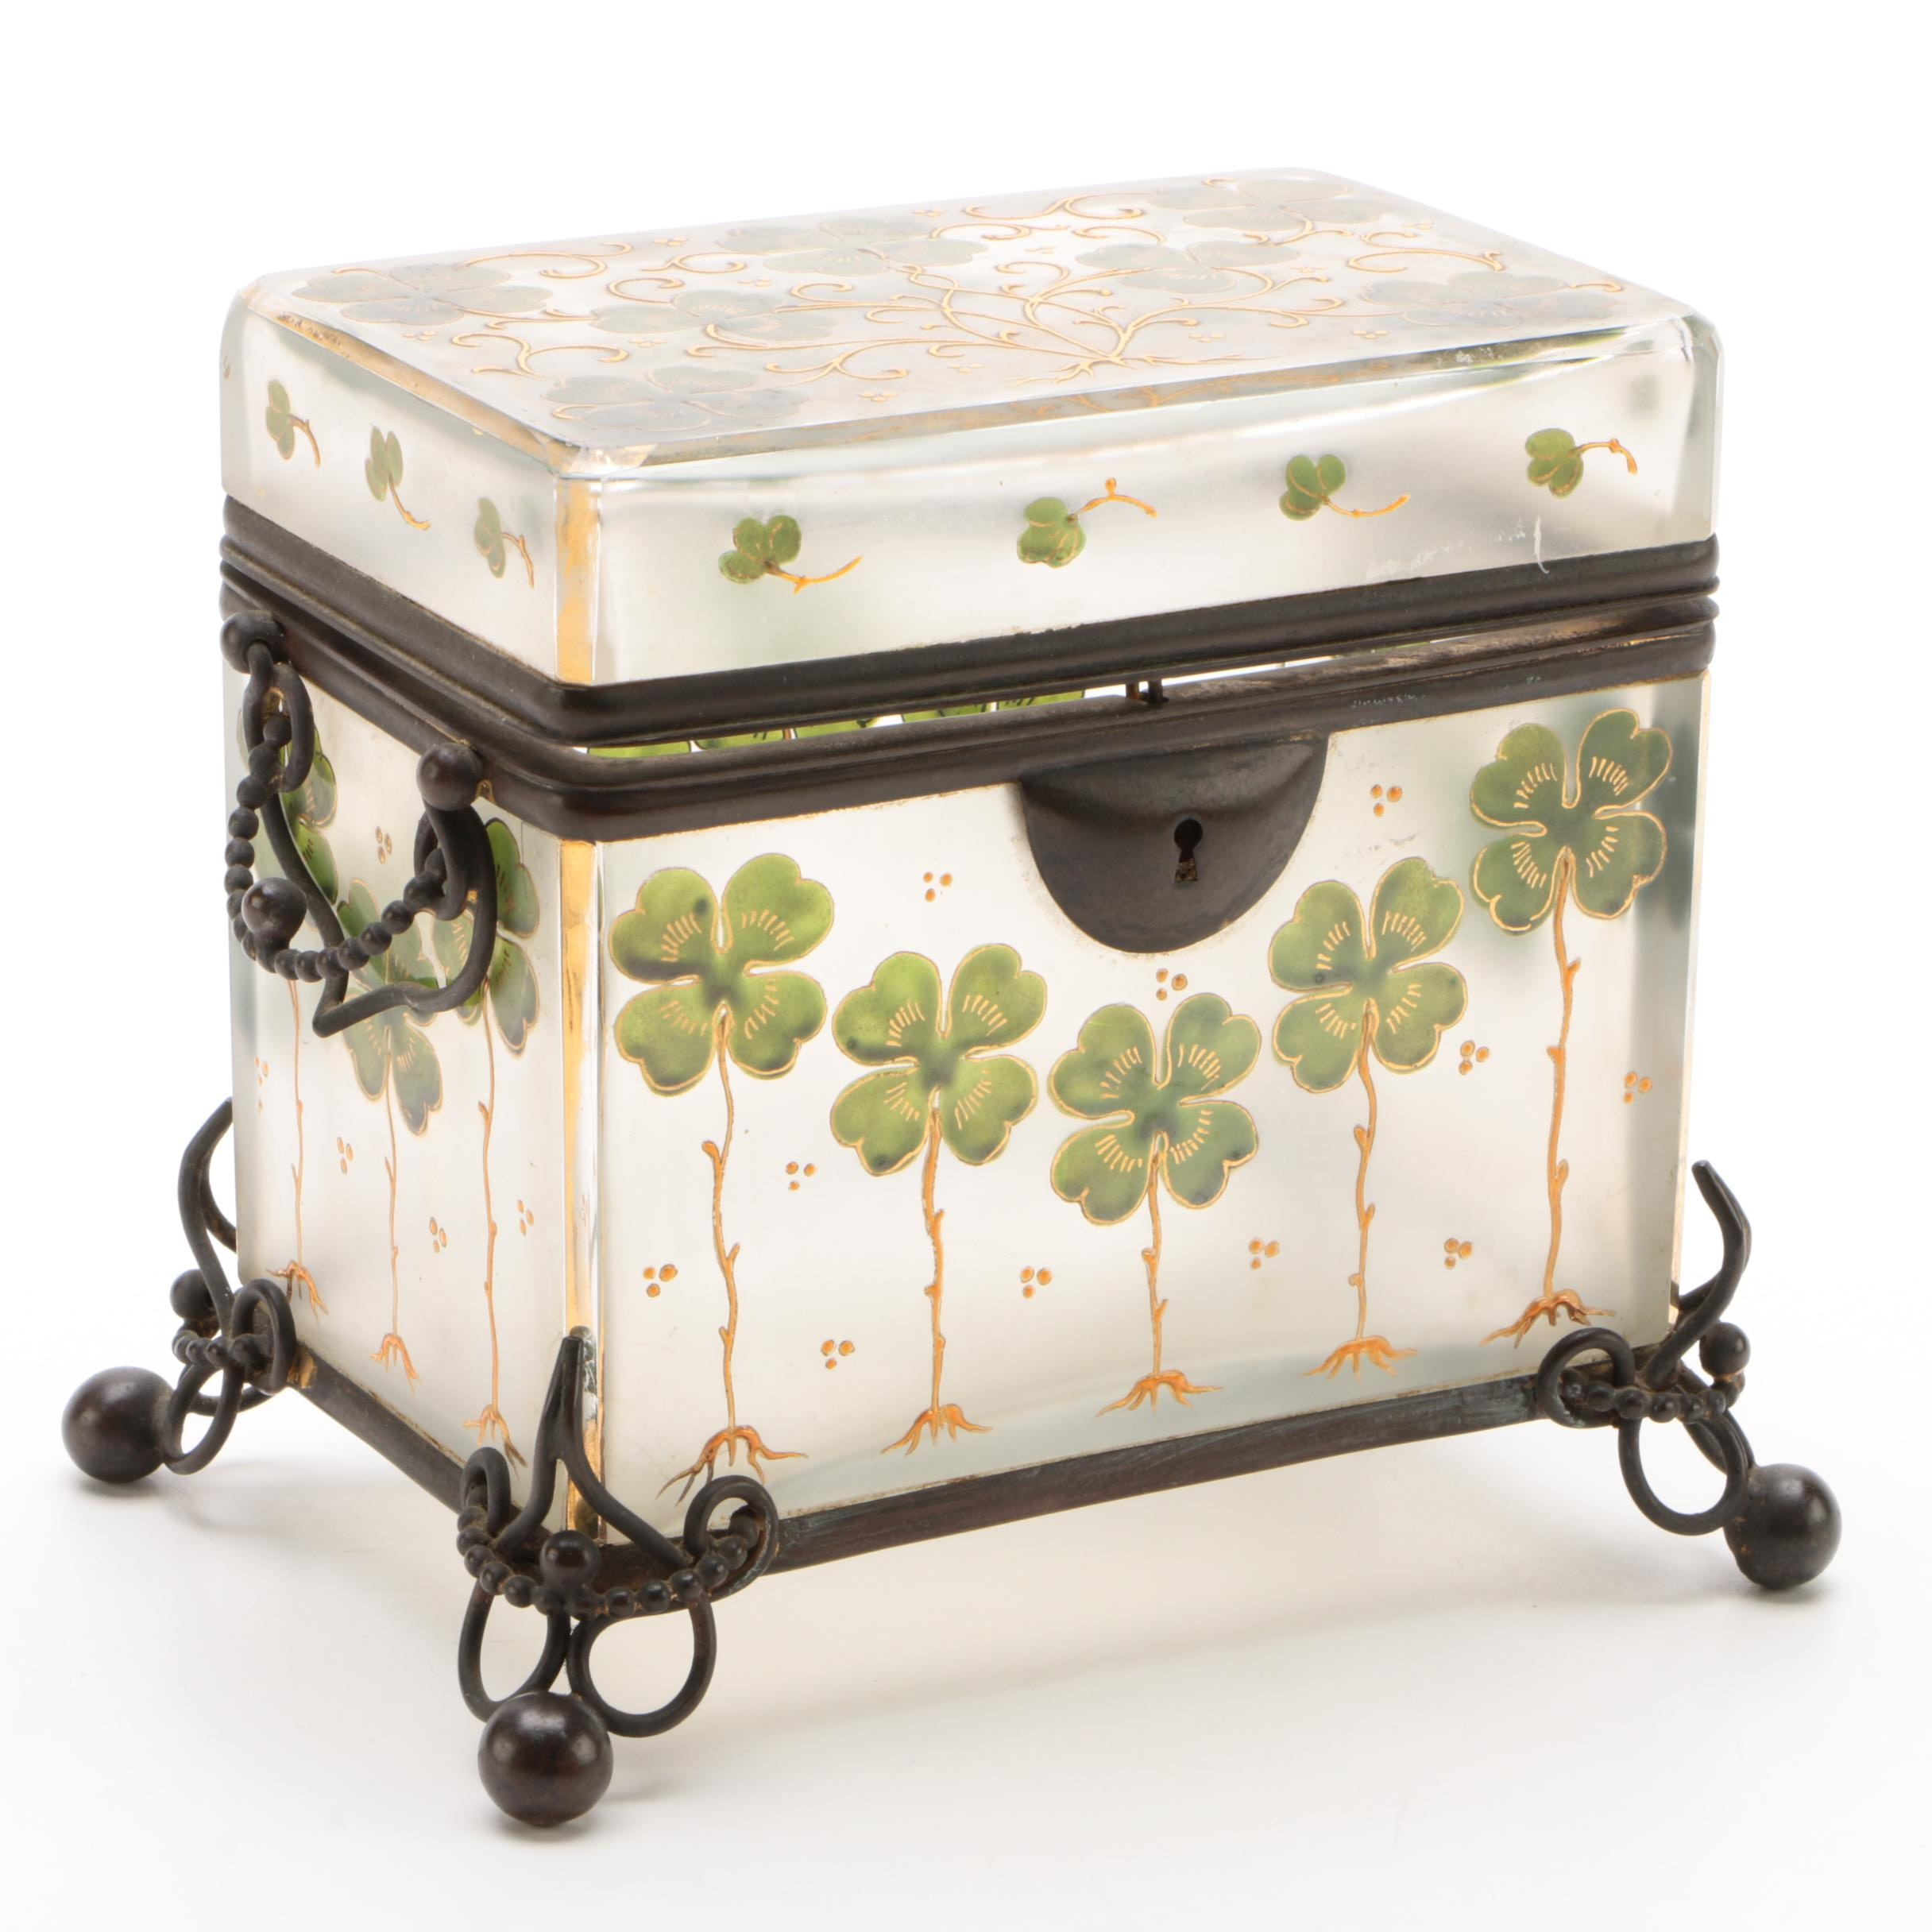 Gilt Metal Mounted Hand-Painted Glass Casket with Clover Motif